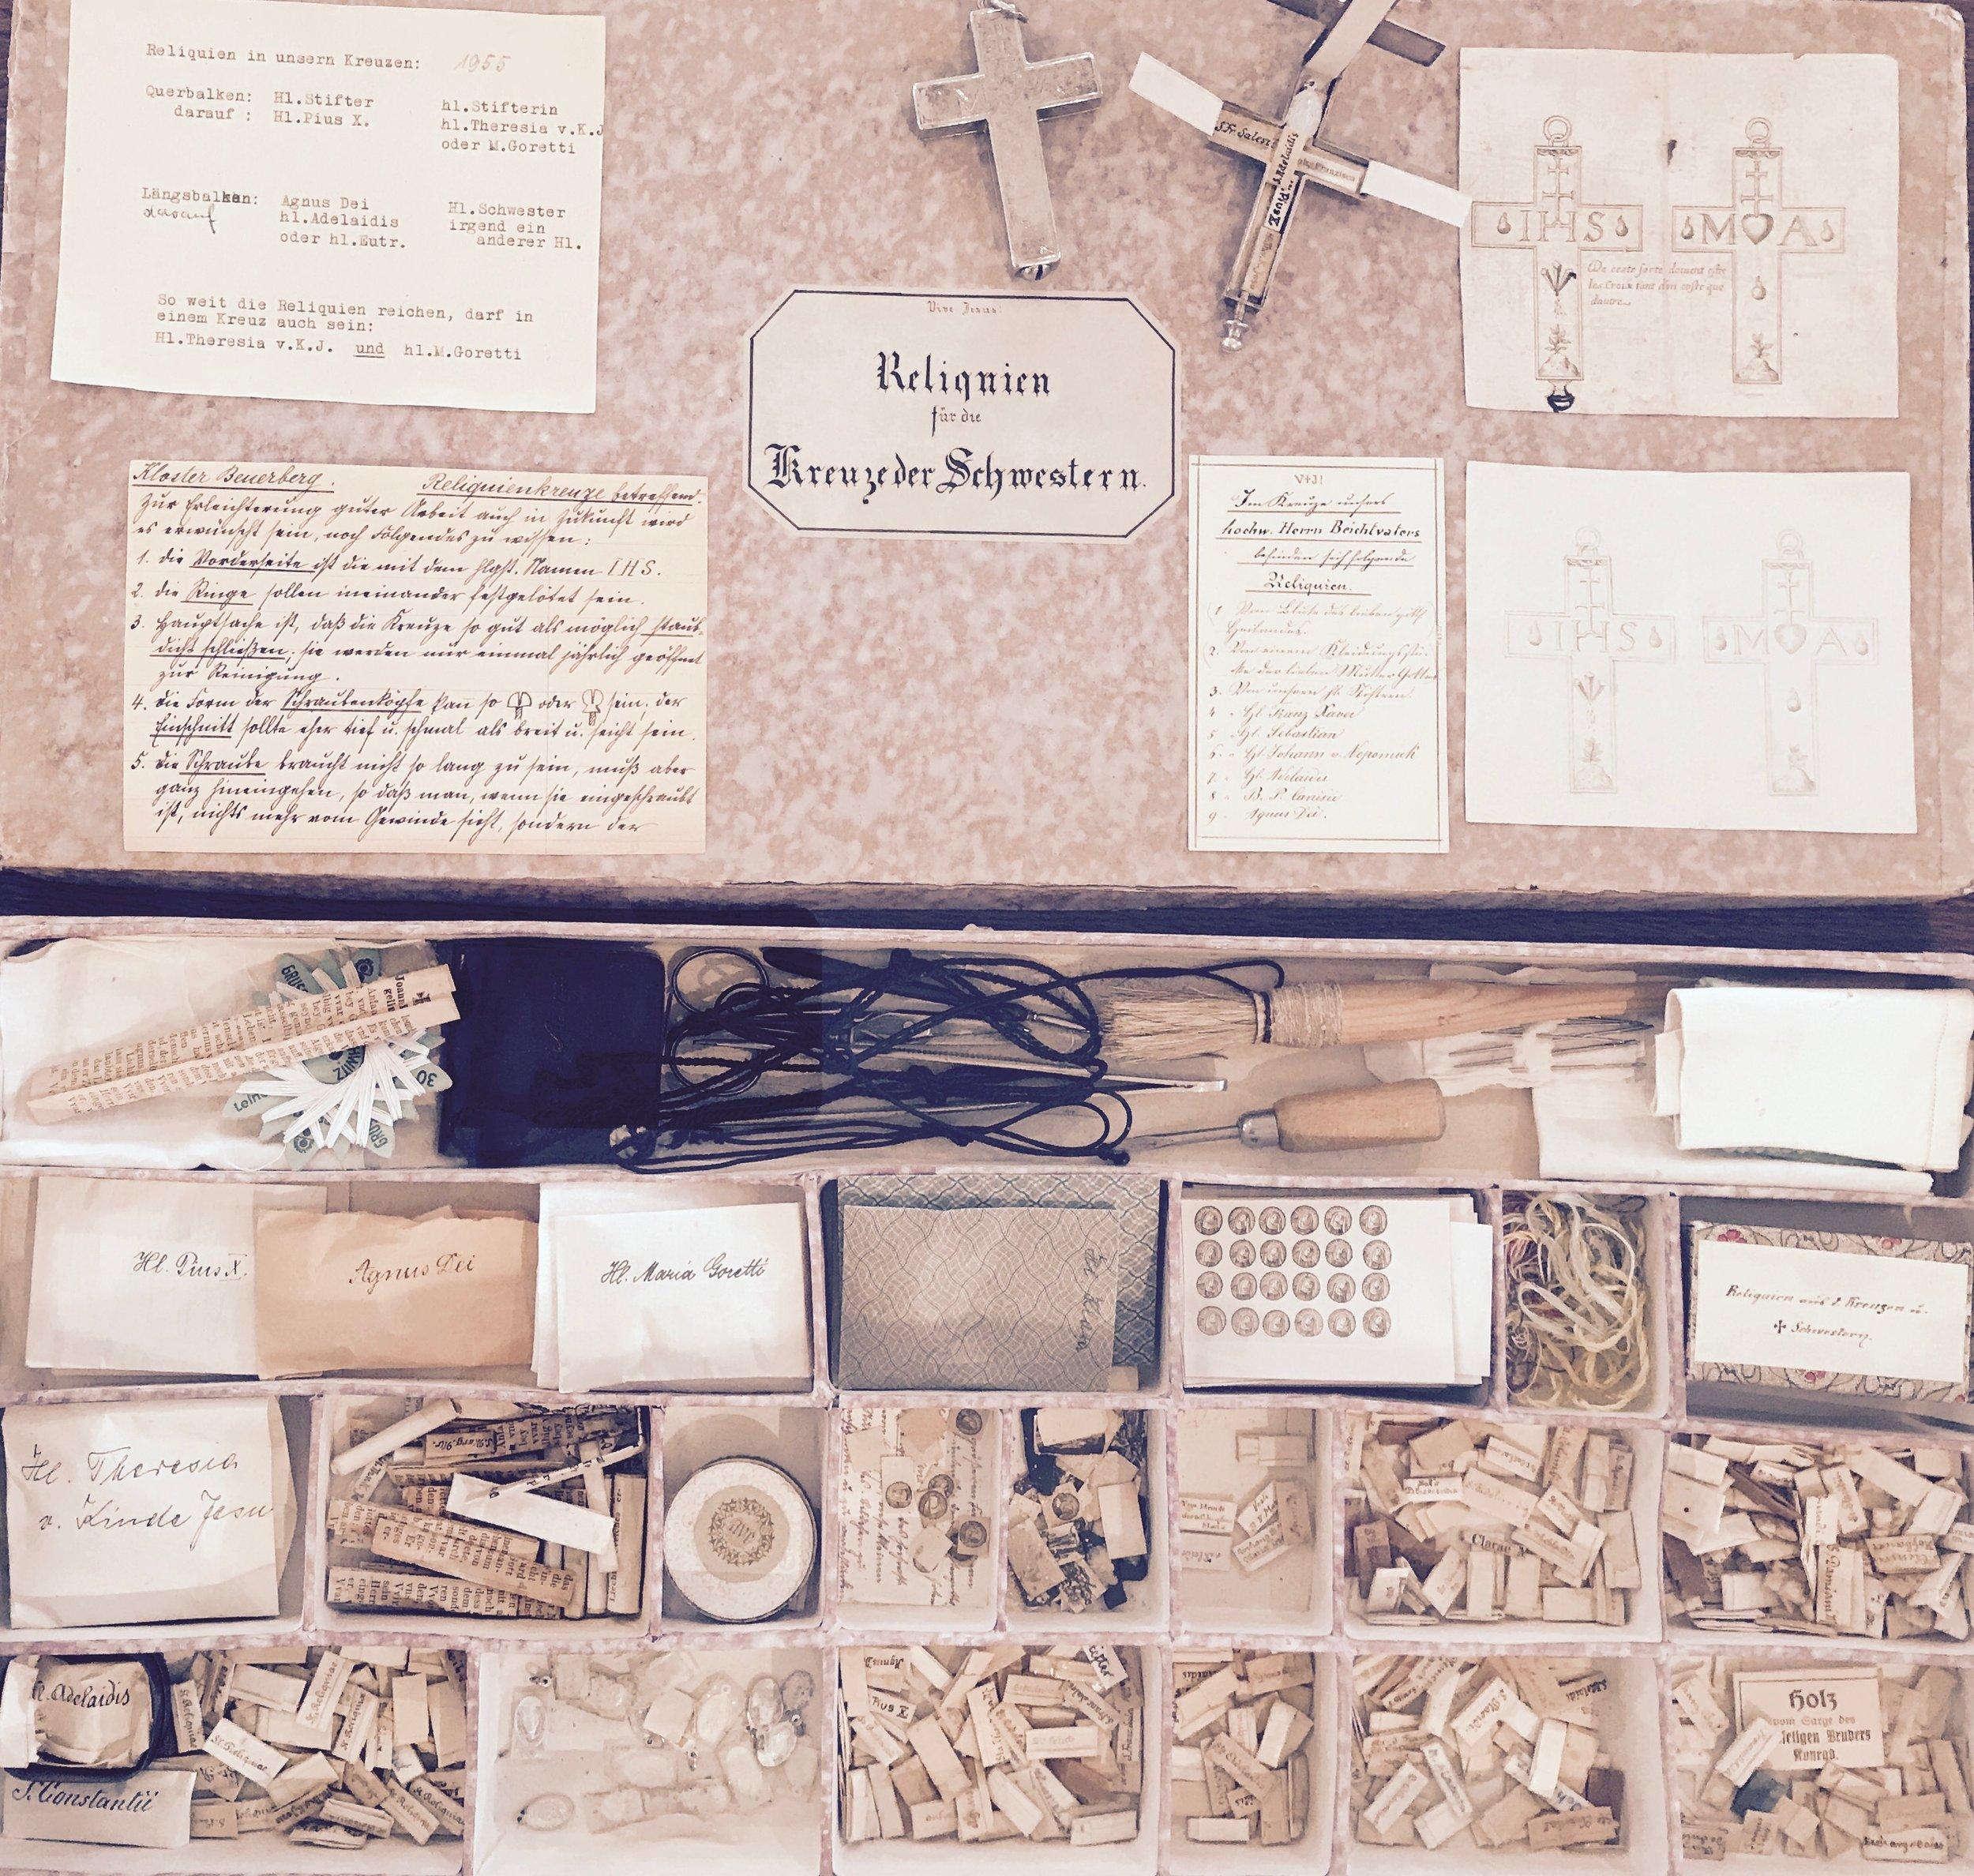 these relics were reserved for the crosses worn by the nuns